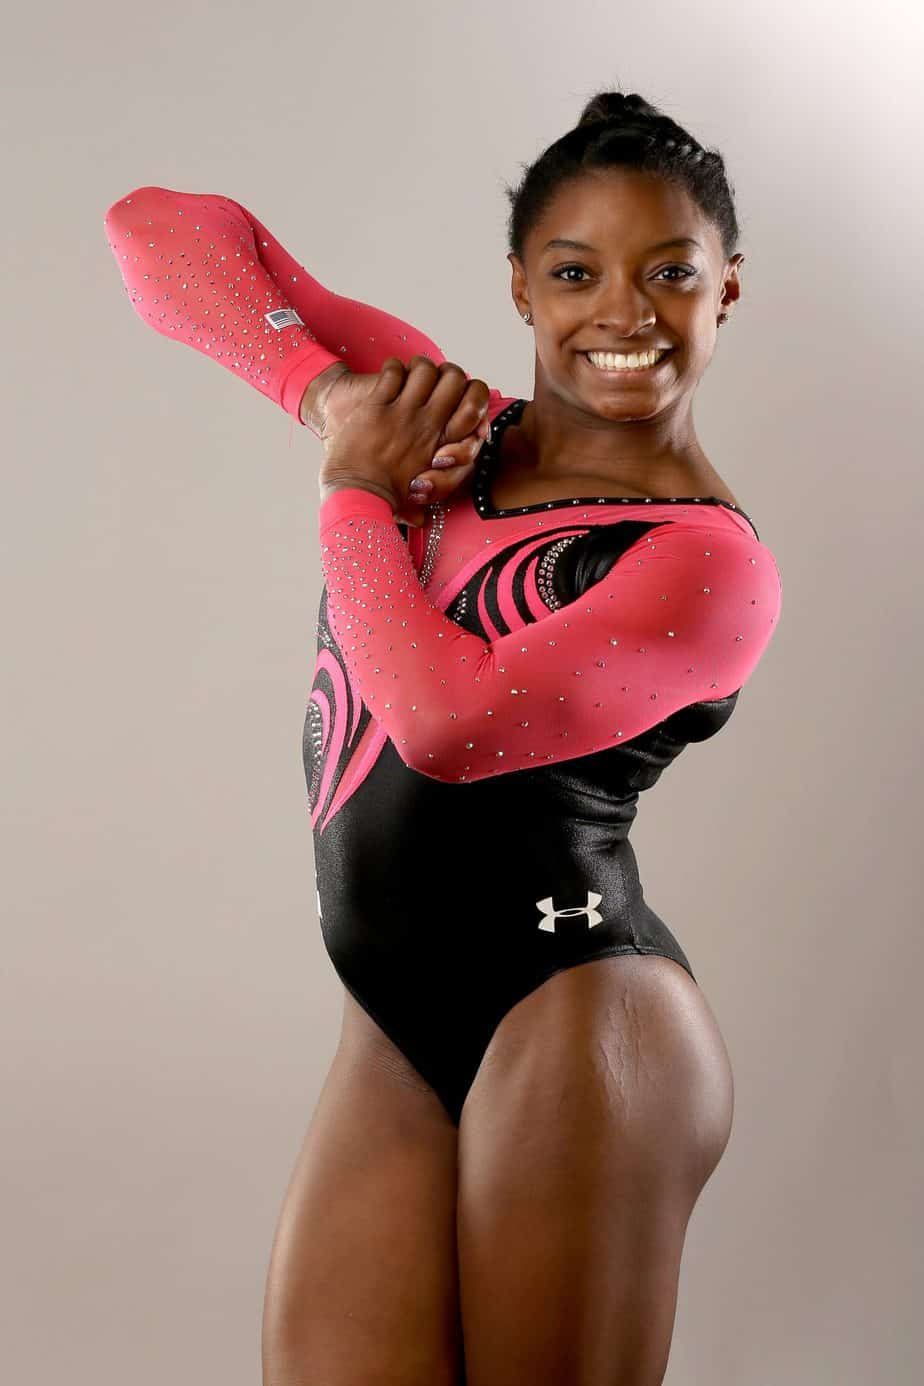 What is Simone Biles total assets?